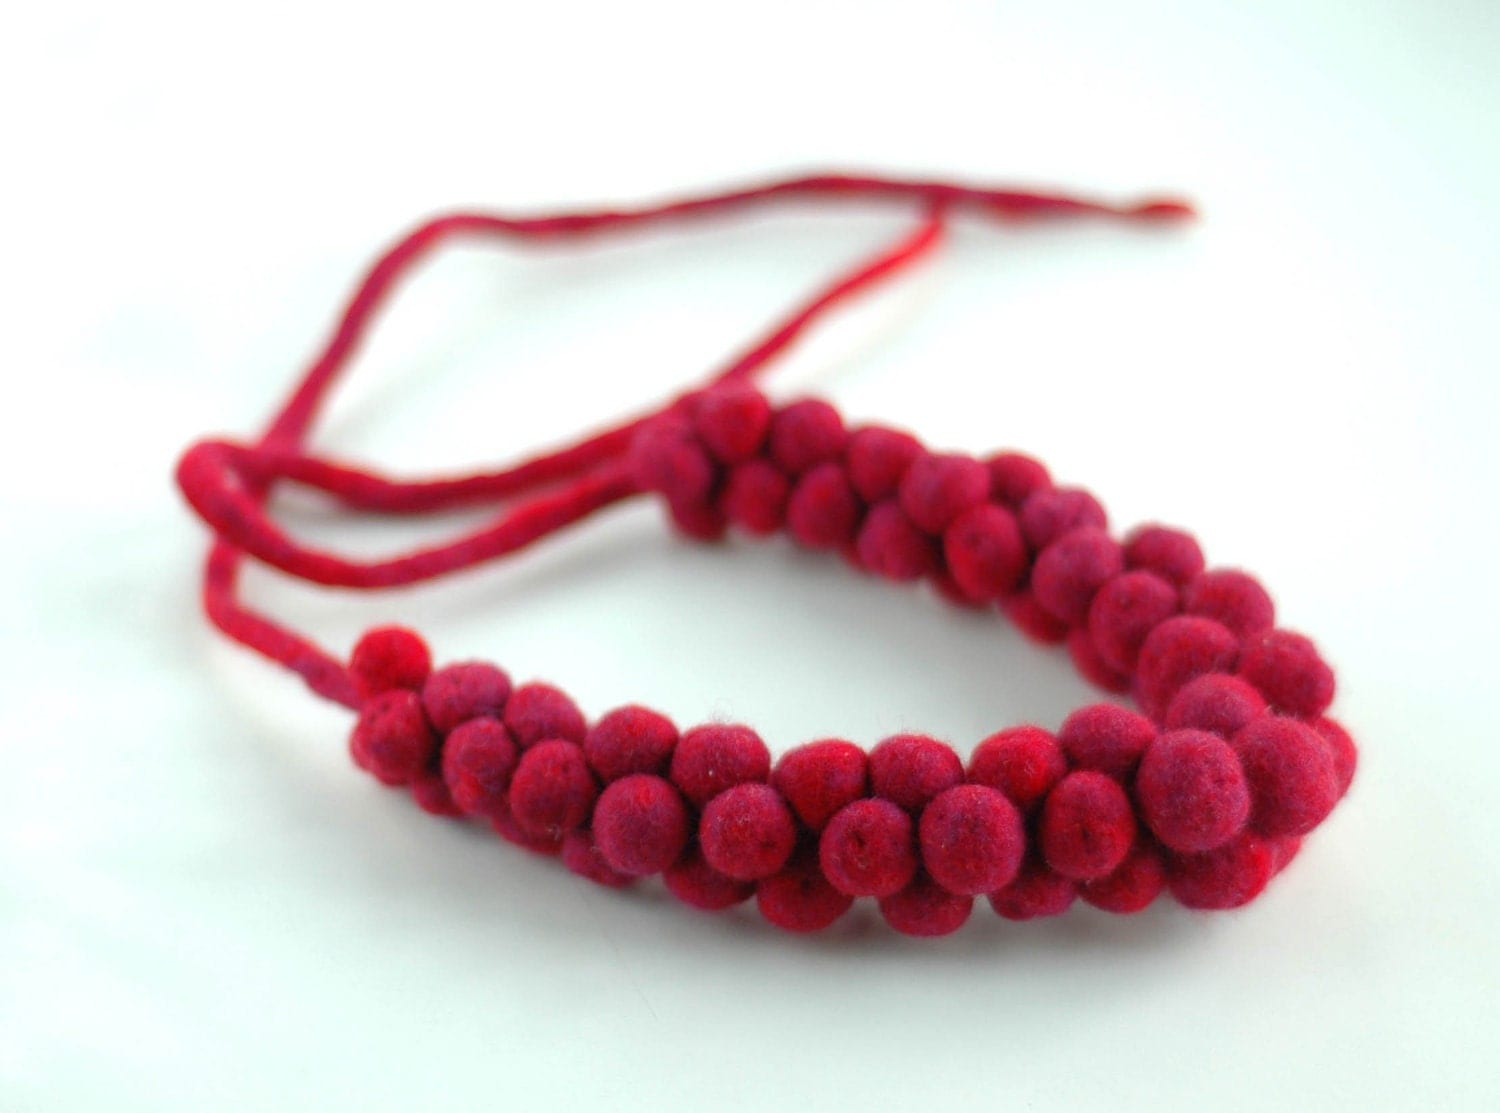 Bold statement necklace, felt necklace in hot pink - Feltik